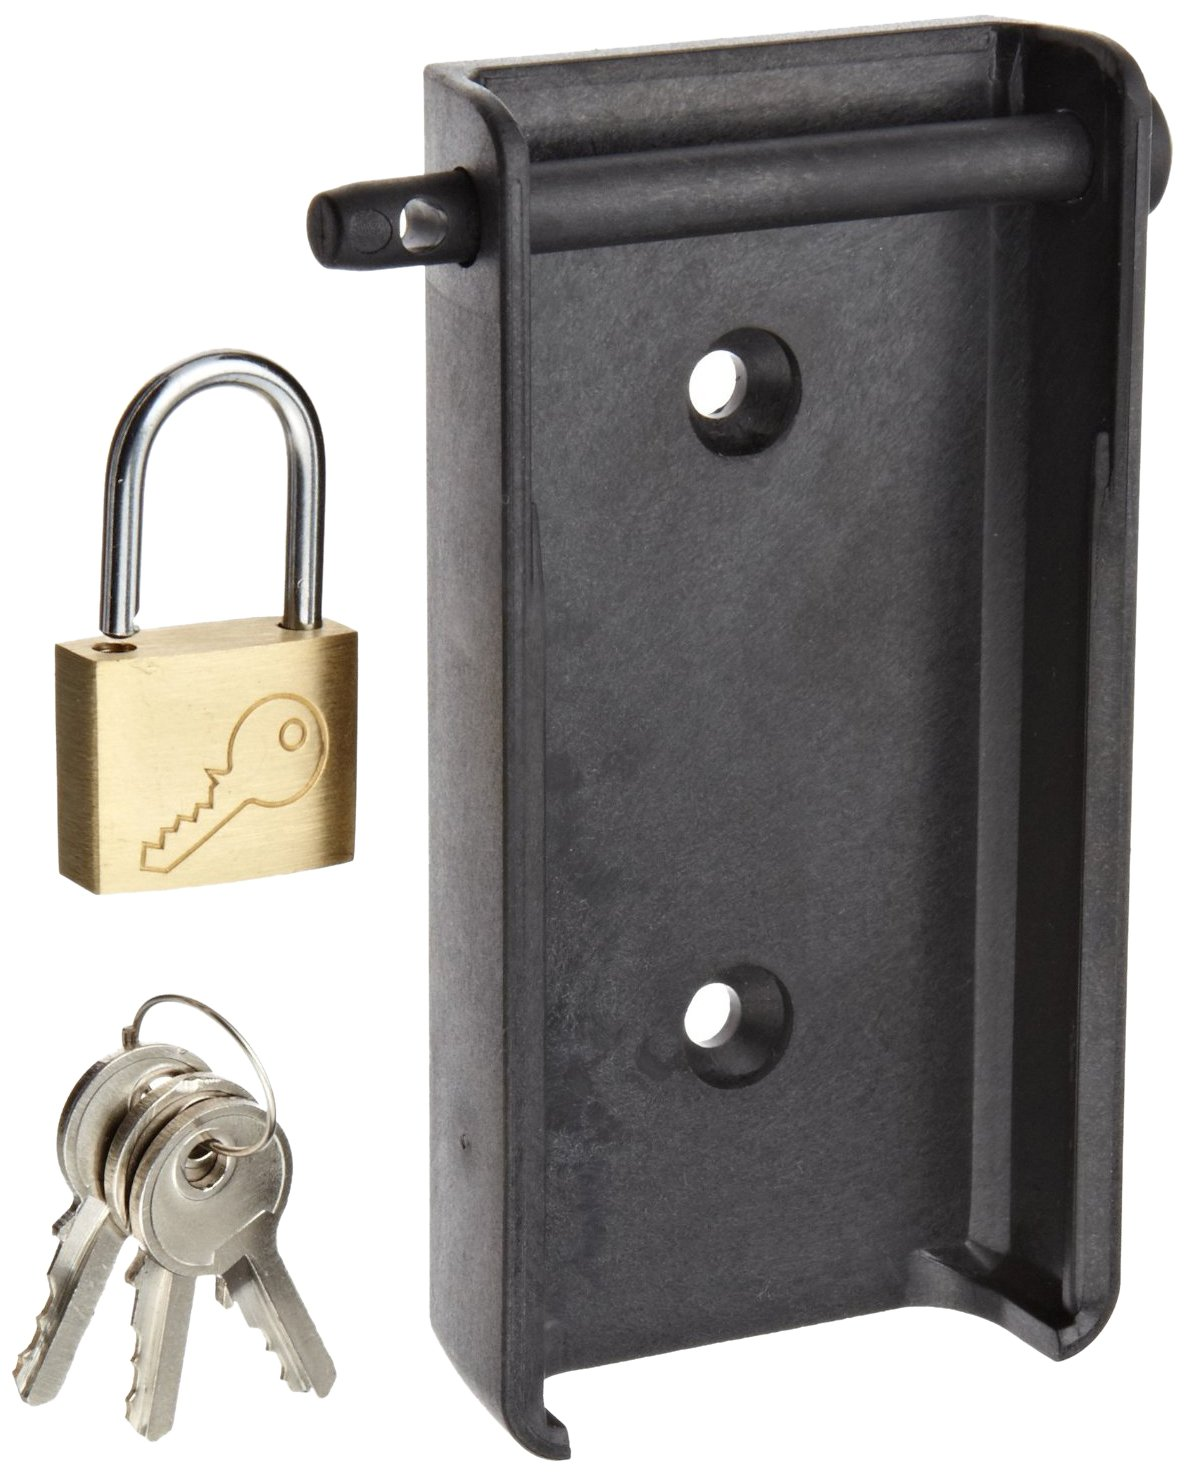 Testo 0554 1703 Wall Holder with Padlock for 176 Data Loggers Black